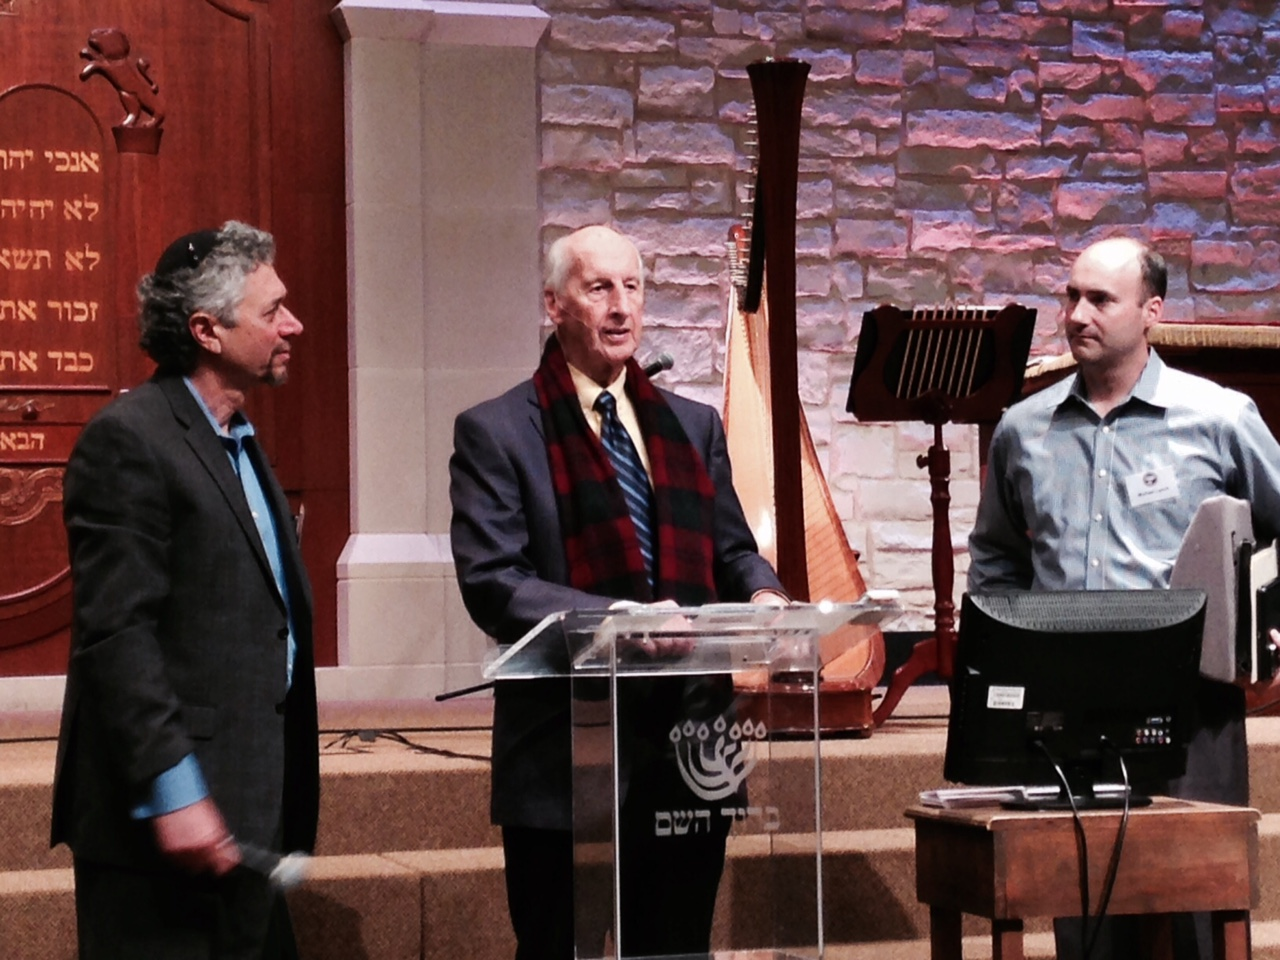 Rabbi Marty Waldman of Baruch HaShem Messianic Synagogue in Dallas is our host (L) and Pastor Jack Hayford was the keynote speaker (Center).